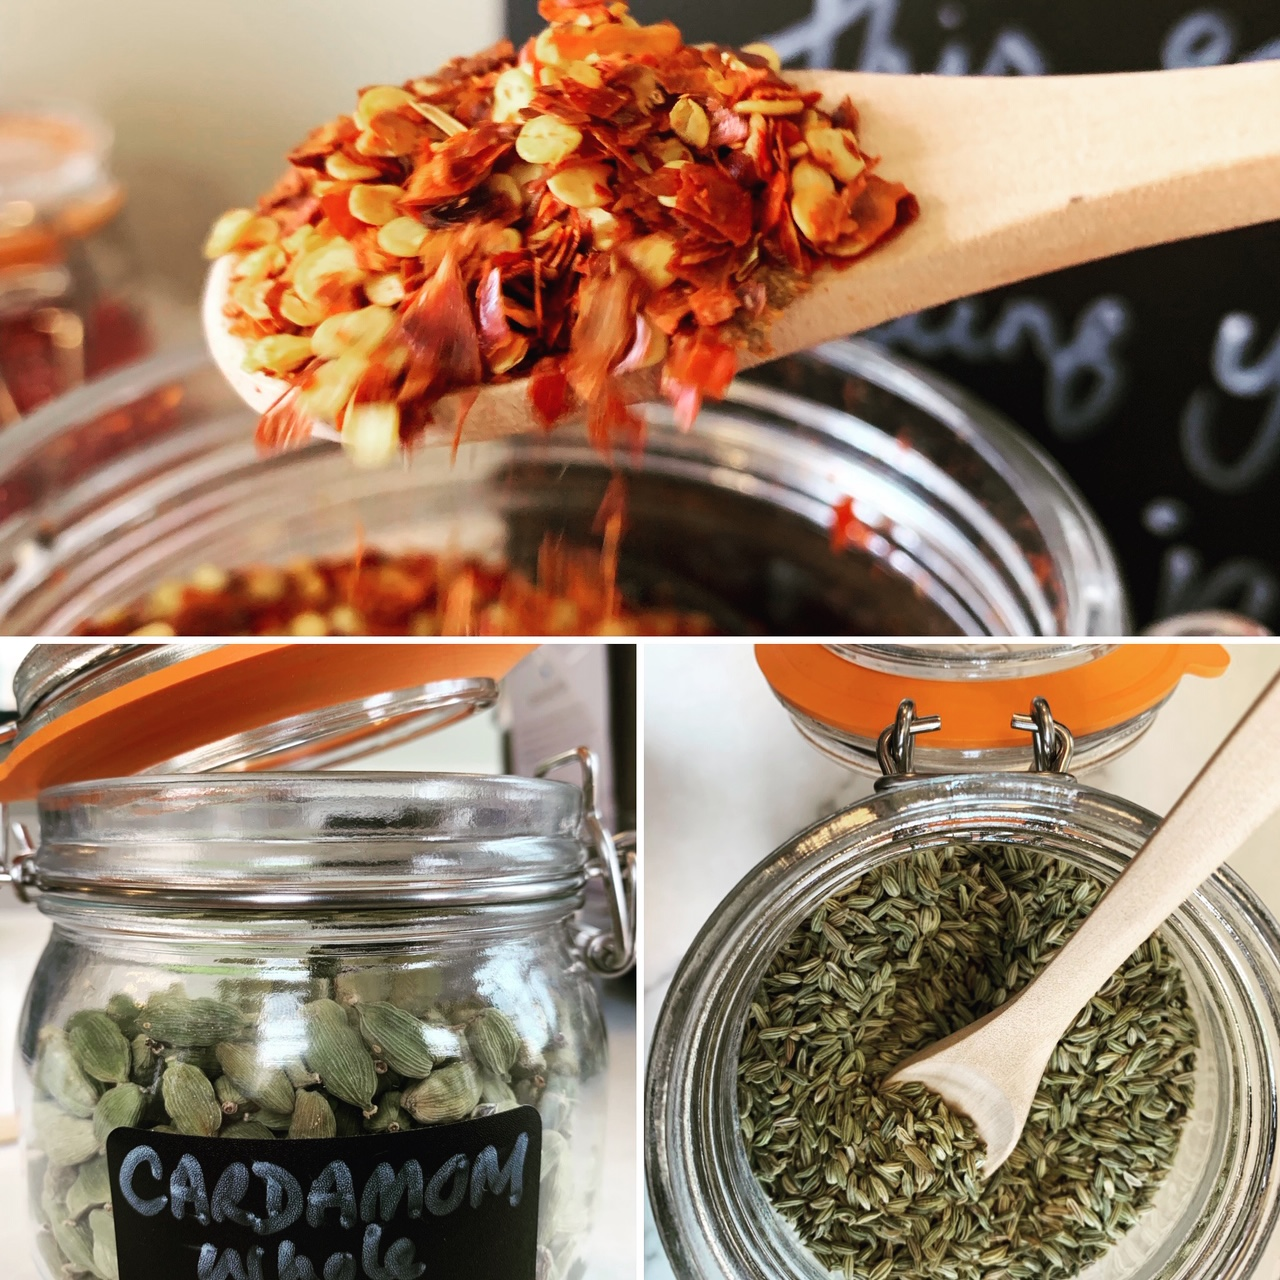 Spice merchants… - One of the best things about our shop is refilling these jars!